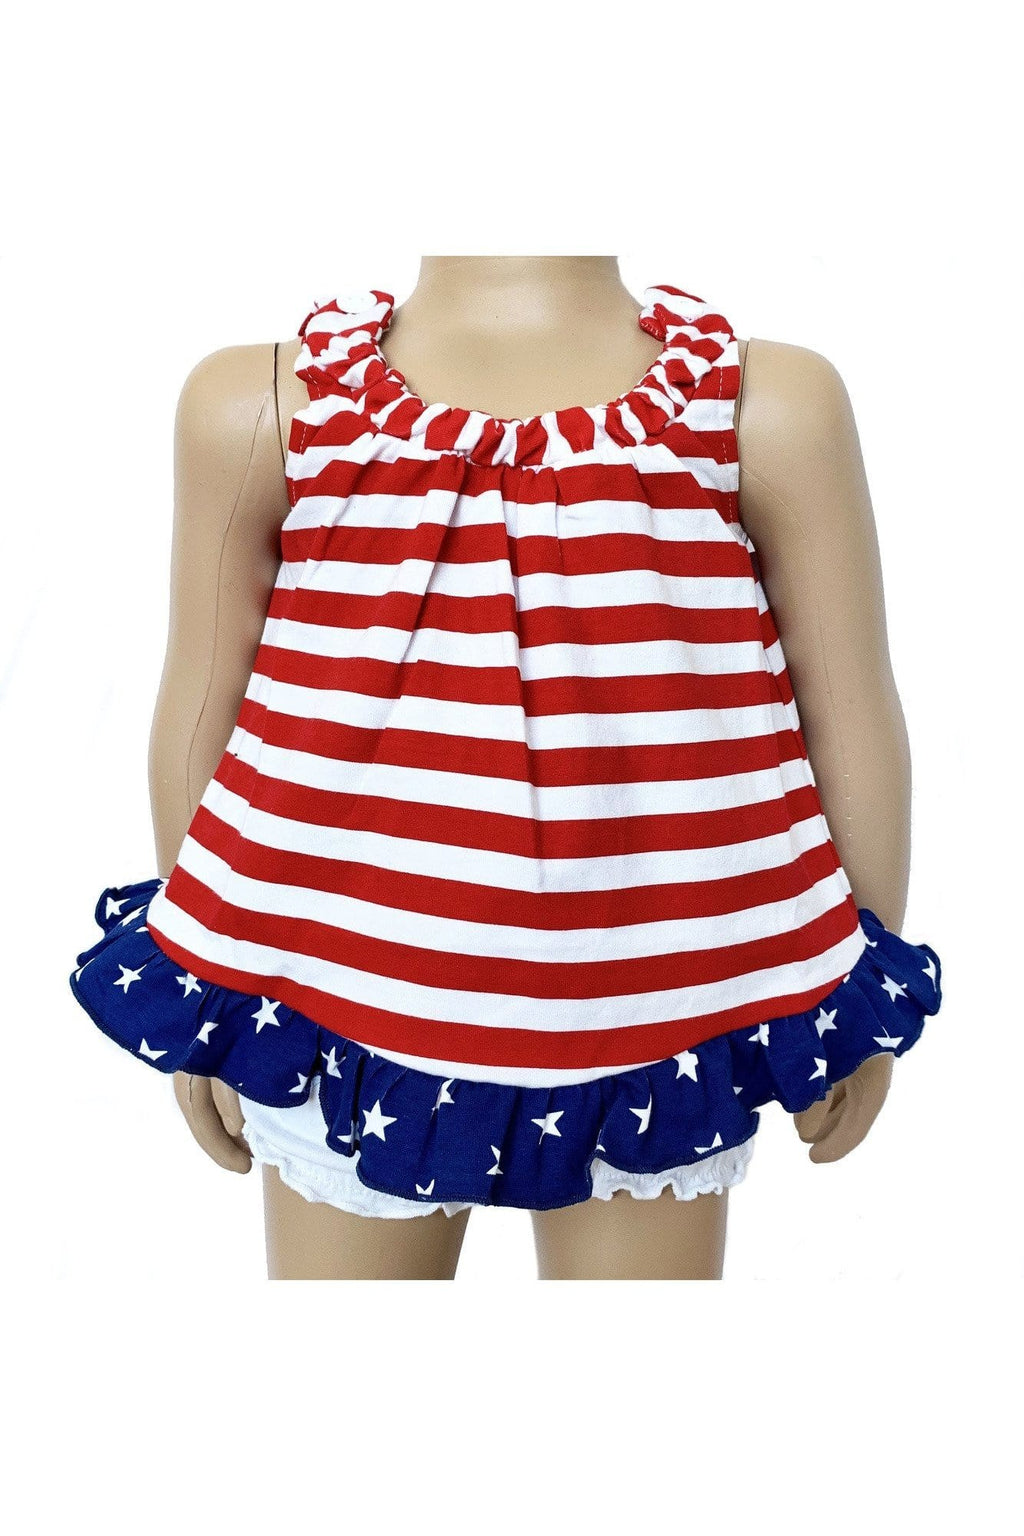 AnnLoren Baby Girls 4th of July Swing Tank Top with Ruffle Trim and Bow Sizes 3M-6 Yrs - Himelhoch's